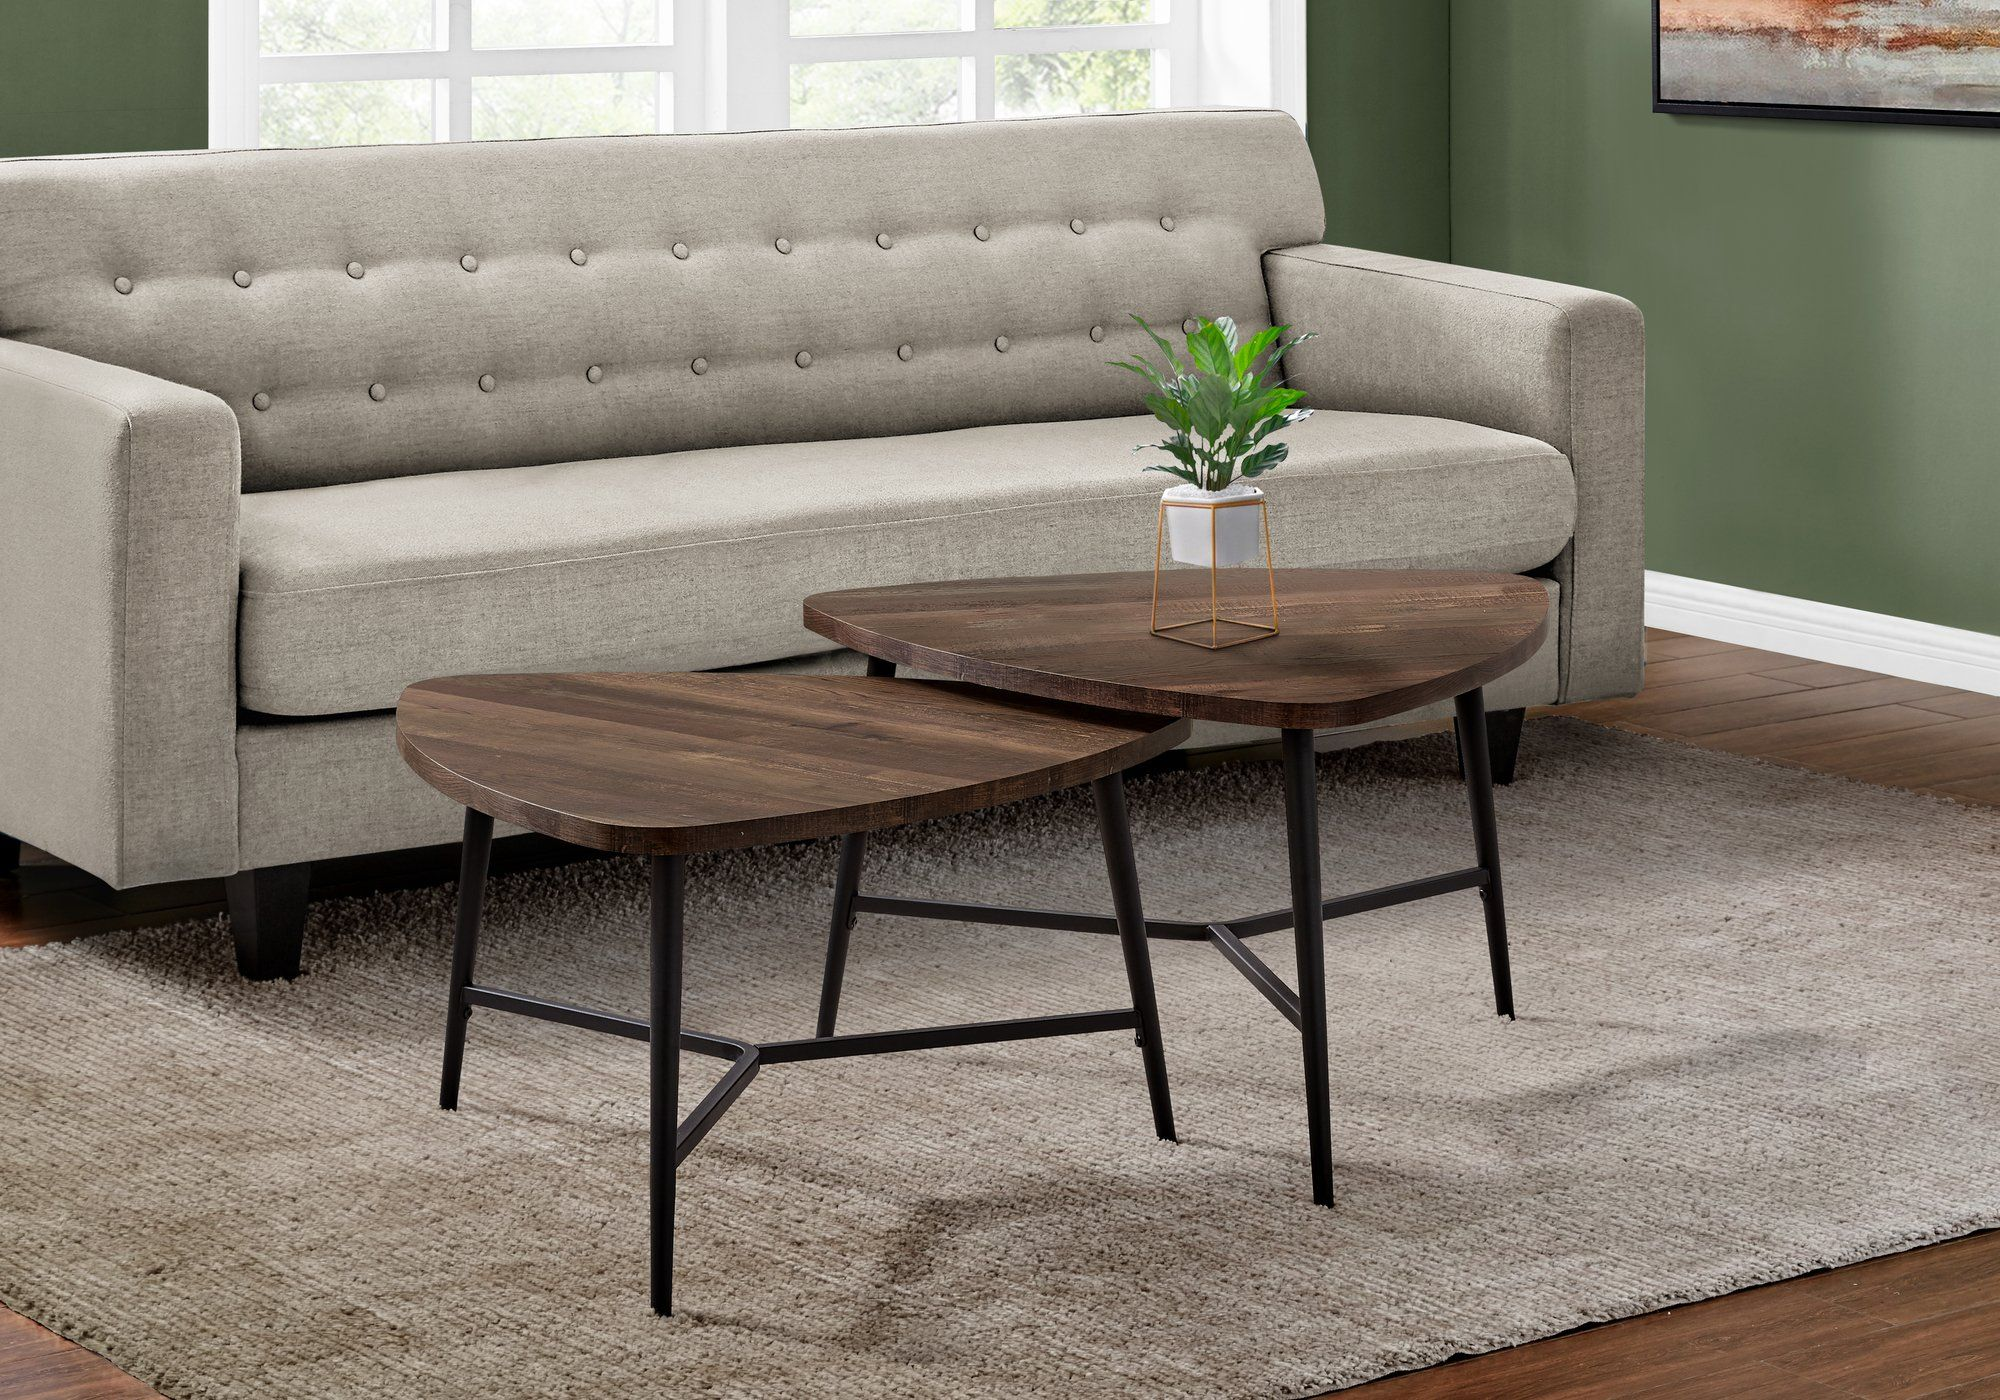 Black And Brown Mid Century Coffee Table Pair Coffee Table Nesting Coffee Tables Mid Century Coffee Table [ 1400 x 2000 Pixel ]